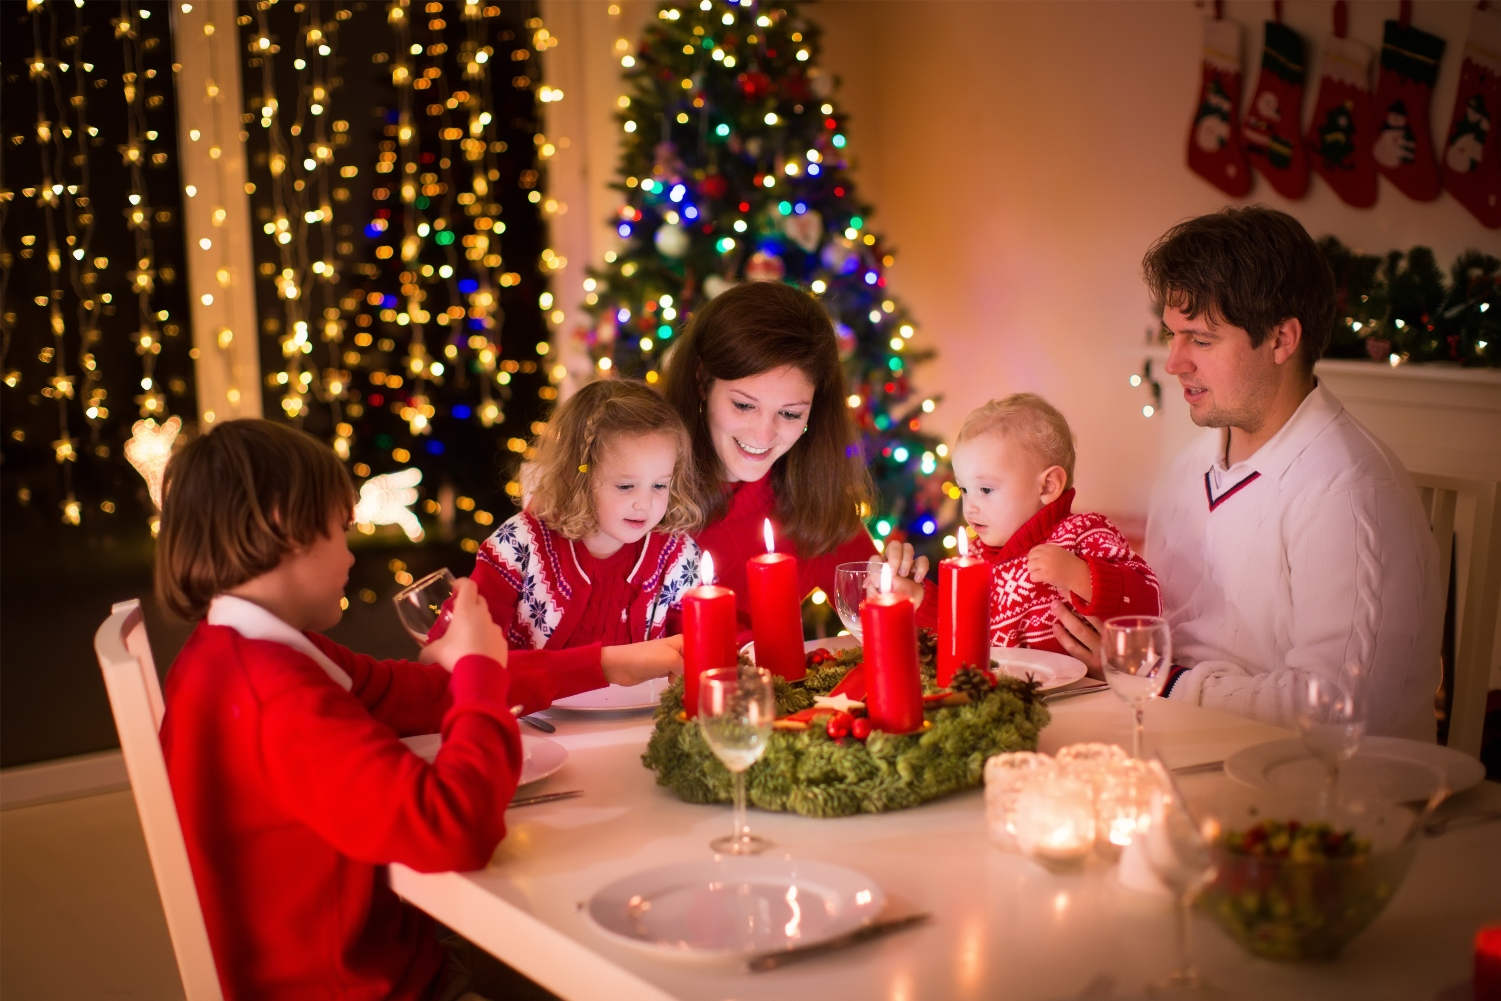 family-Christmas-pictures-tips